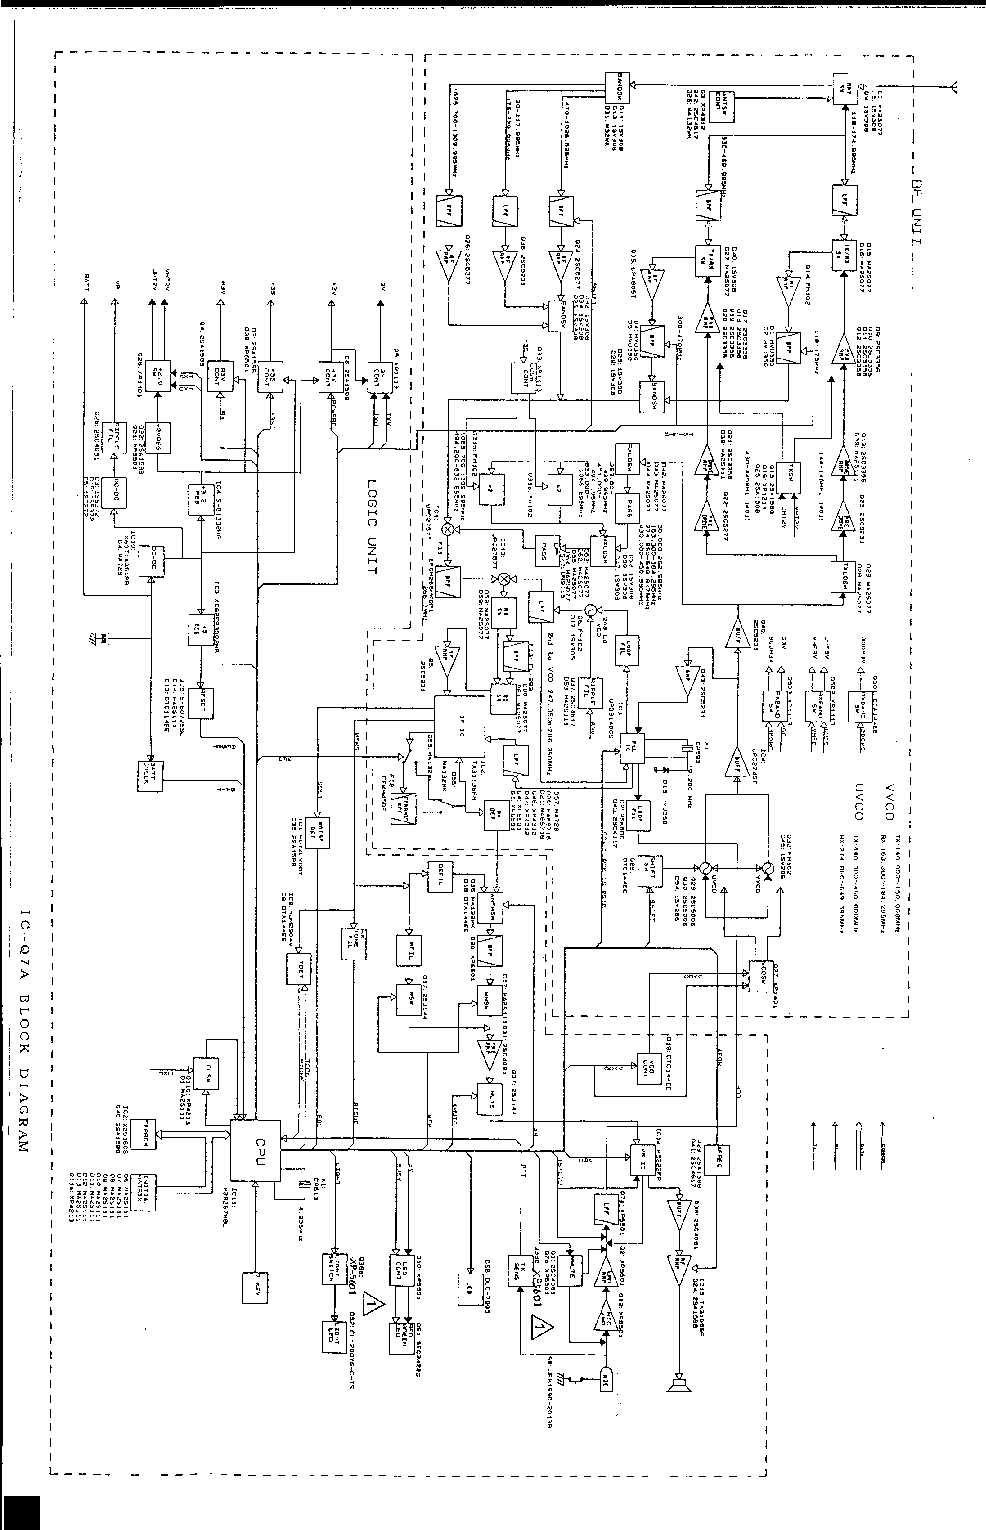 ICOM IC-2500 Service Manual free download, schematics